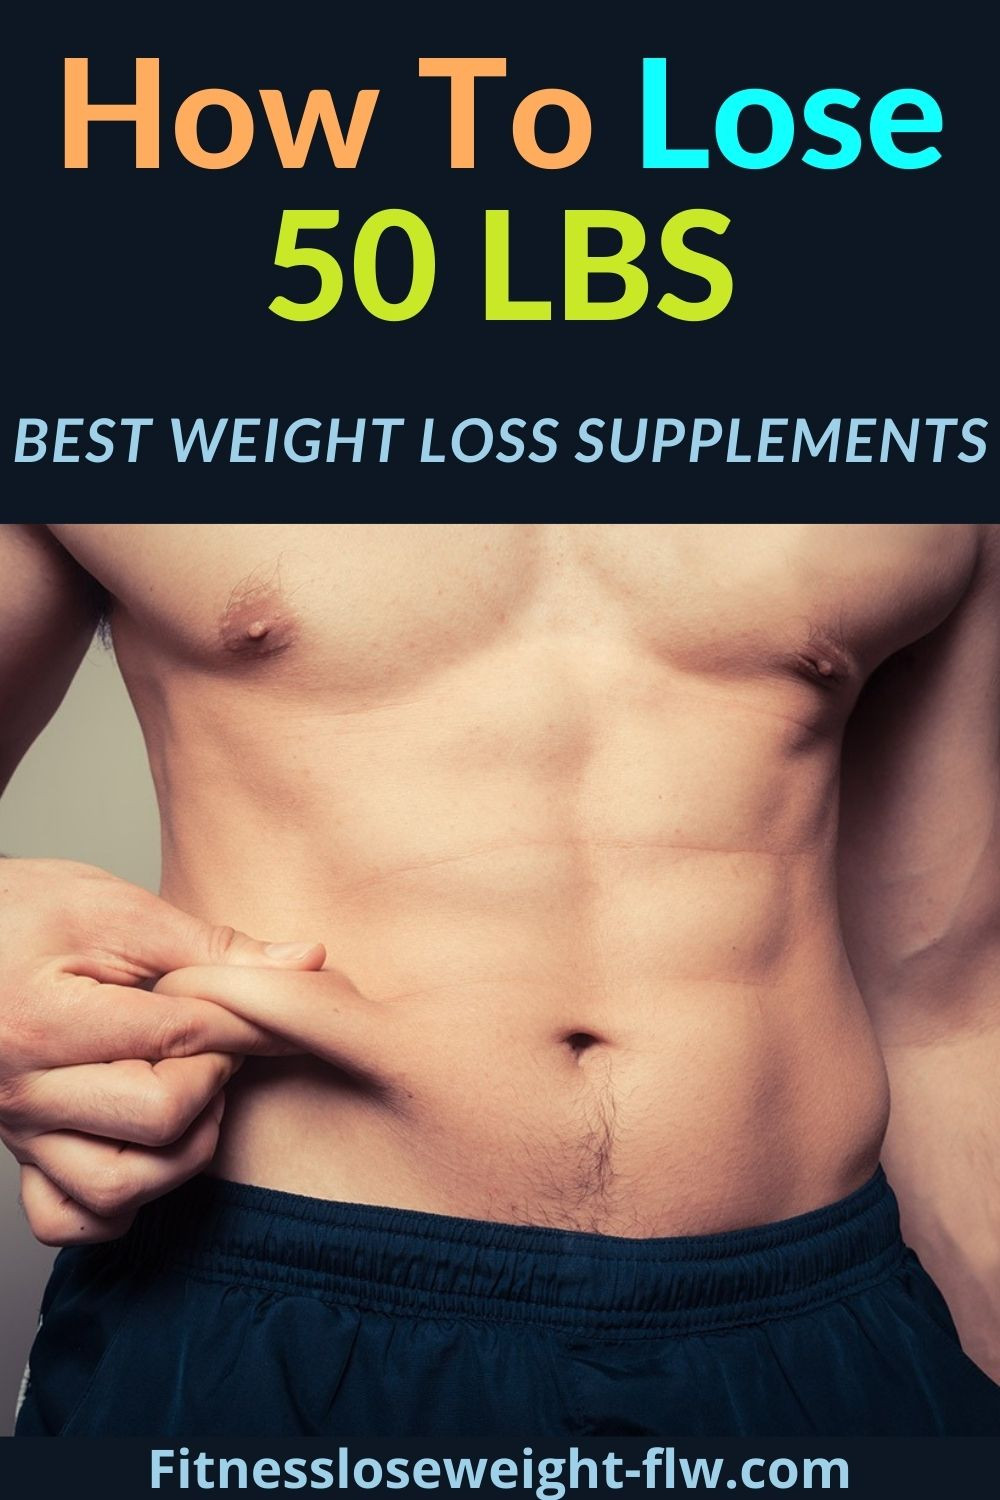 How To Lose 50 LBS | Best Weight Loss Supplements